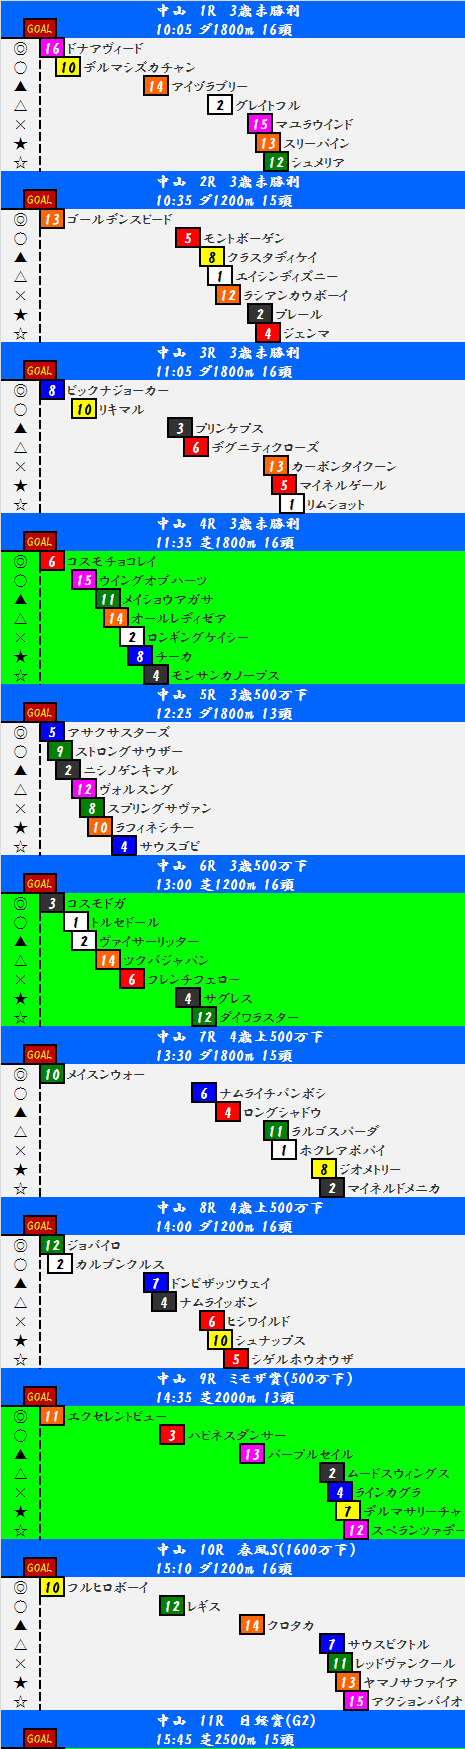 201403291.png